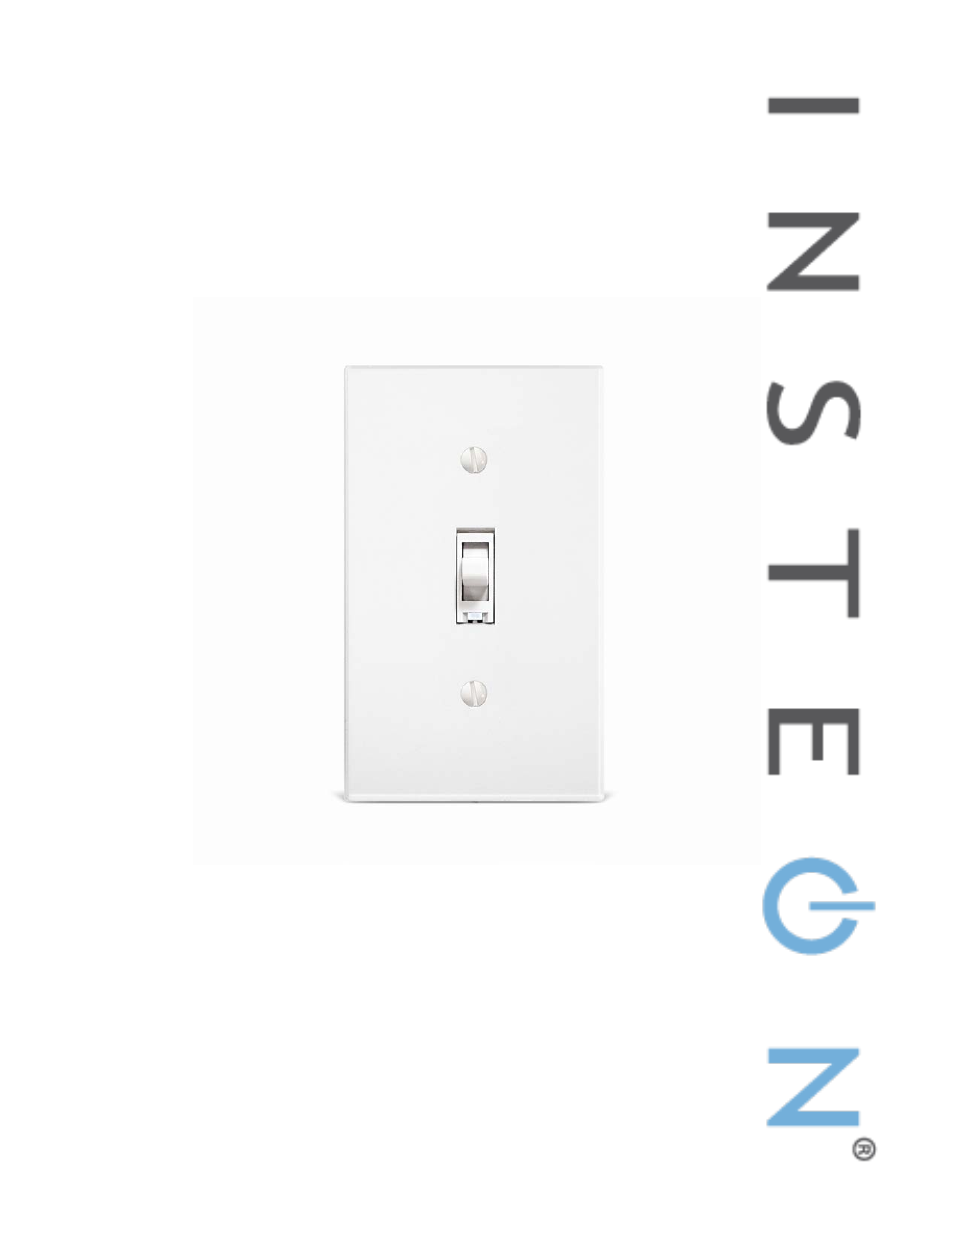 insteon togglelinc relay  2466sw  manual user manual